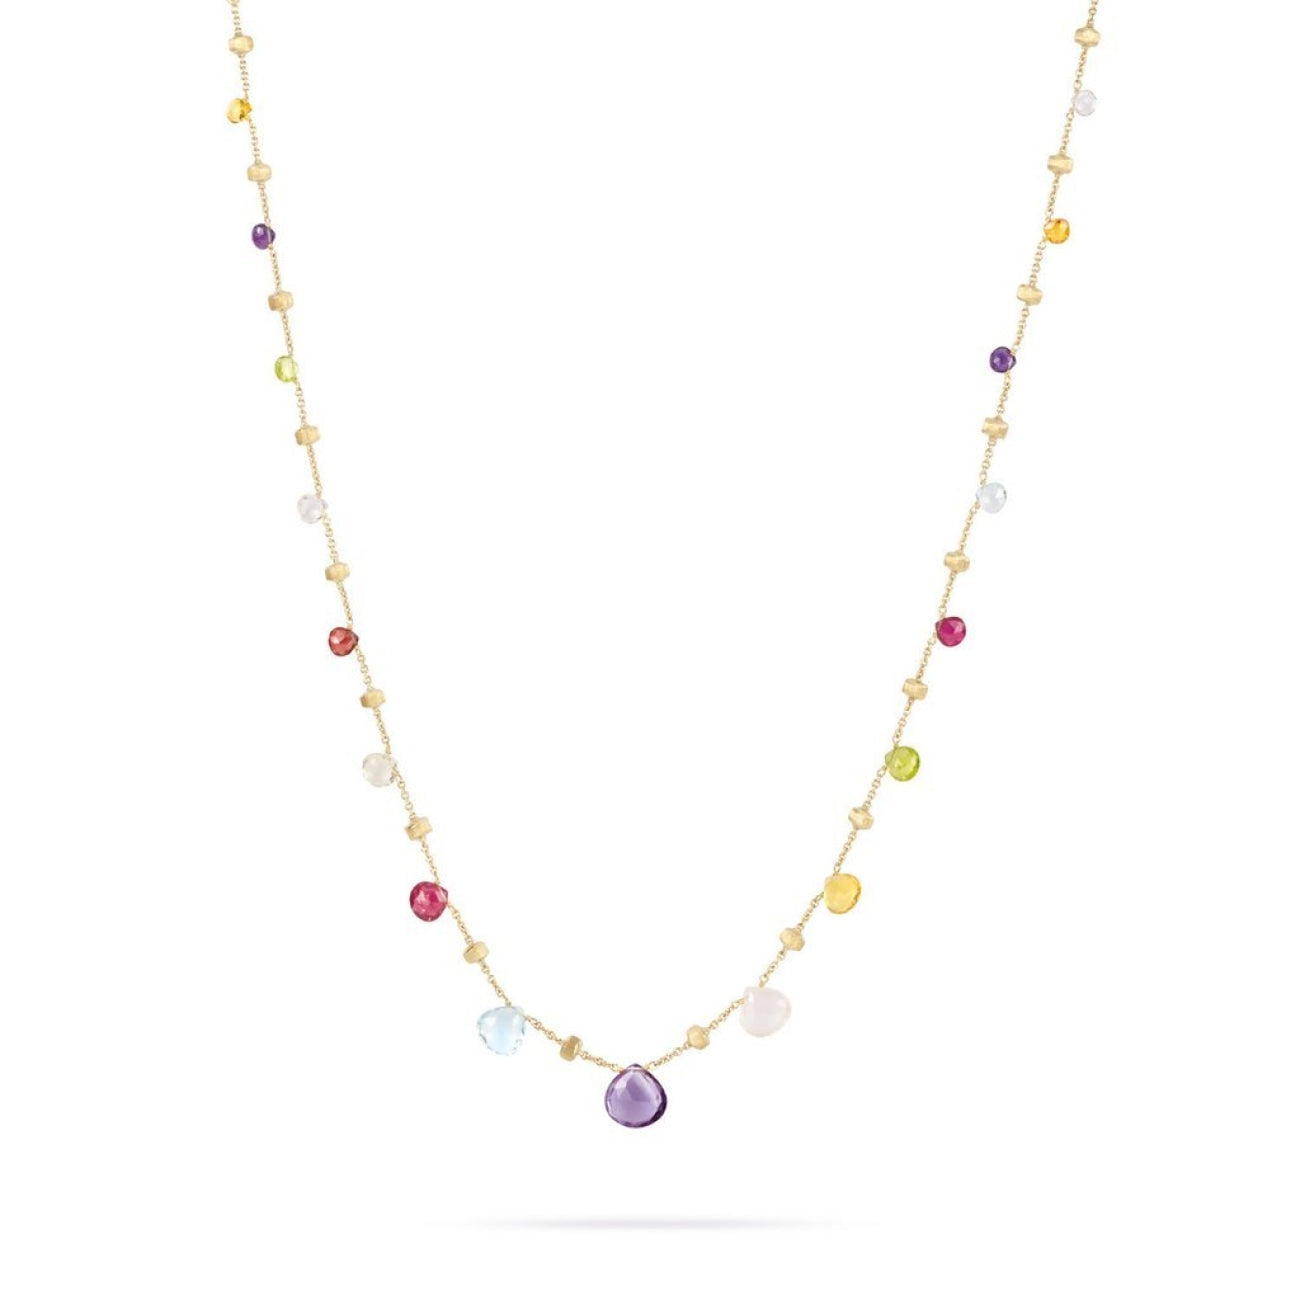 Marco Bicego Jewelry - 18K Yellow Gold & Mixed Stone Graduated Short Necklace | Manfredi Jewels